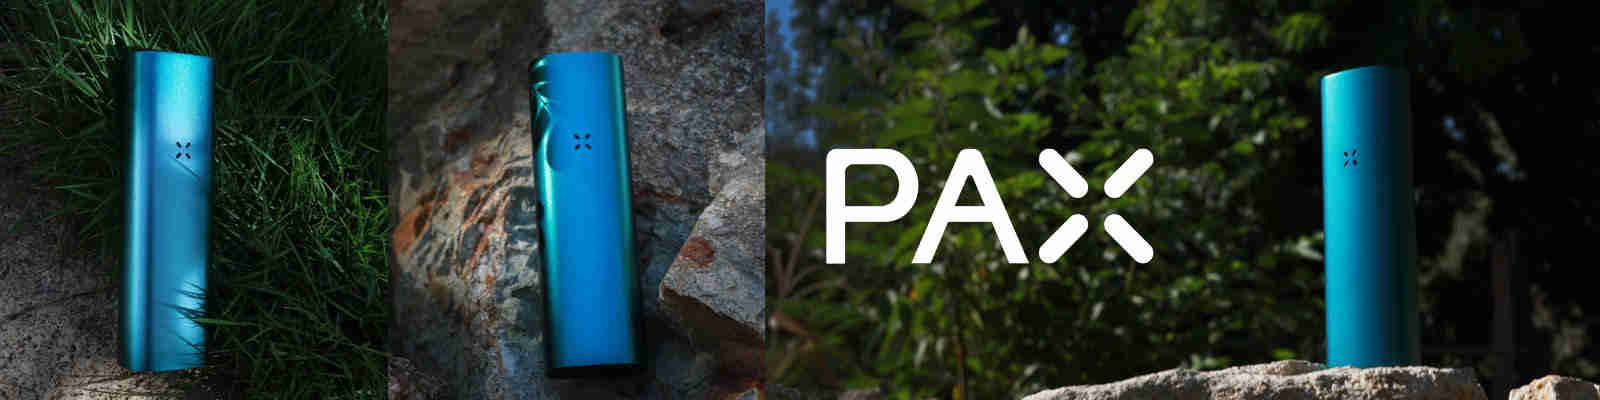 Pax Vaporizers UK Authorized Seller and Free Shipping